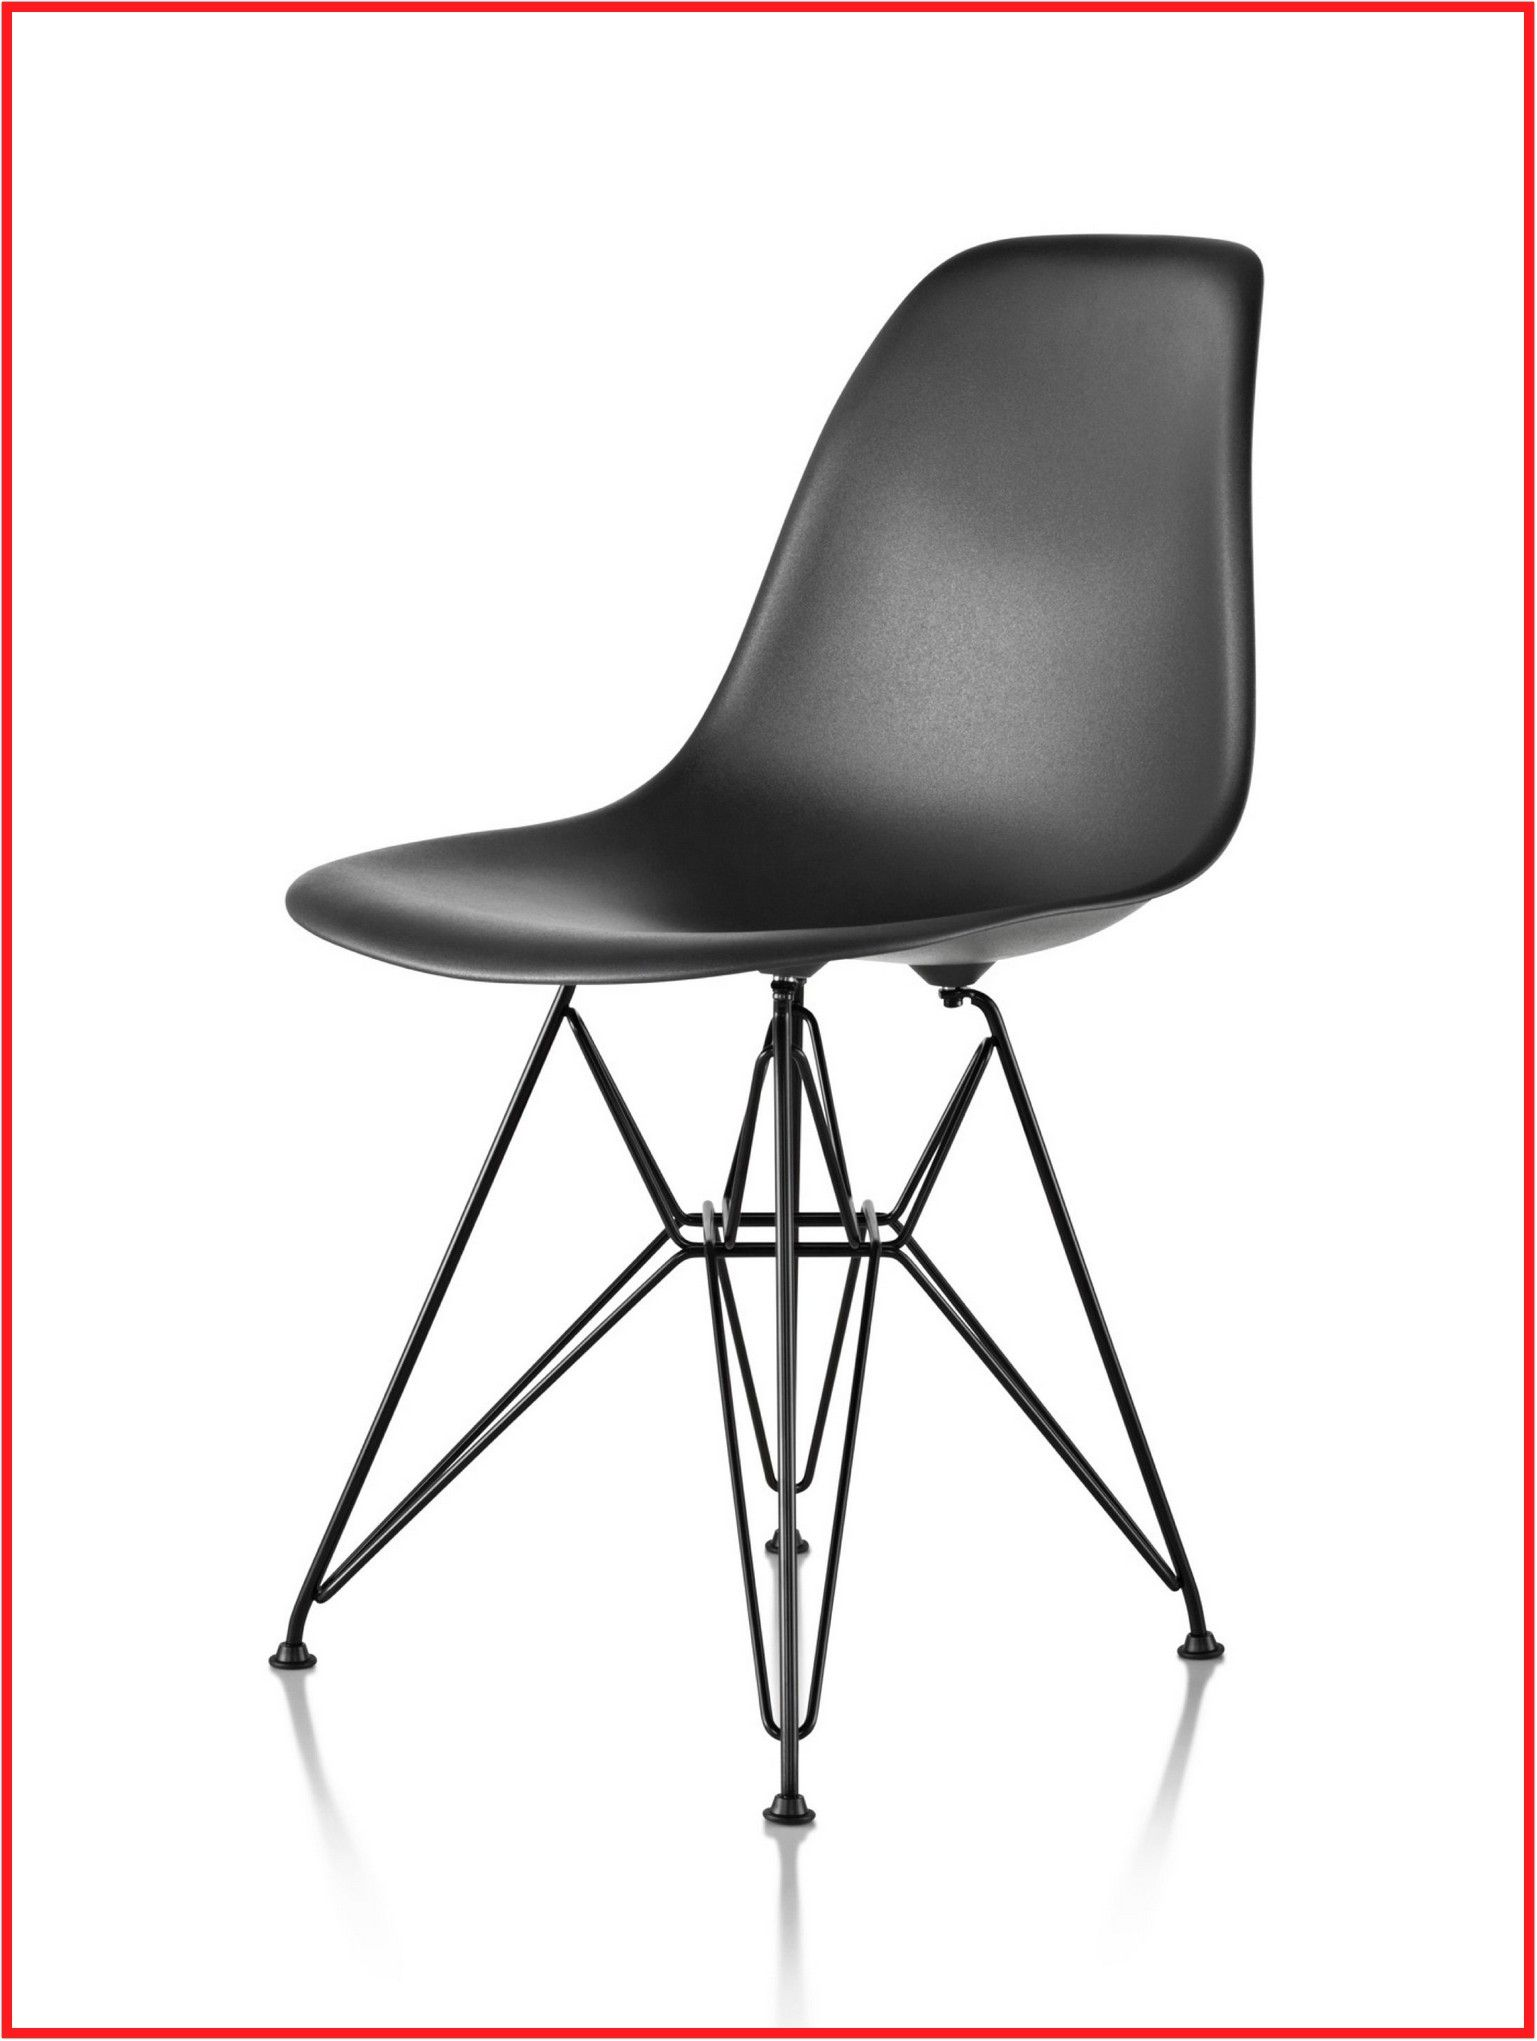 89 Reference Of Eames Wire Chair Wikipedia In 2020 Eames Wire Chairs Wire Chair Eames Molded Plastic Side Chair